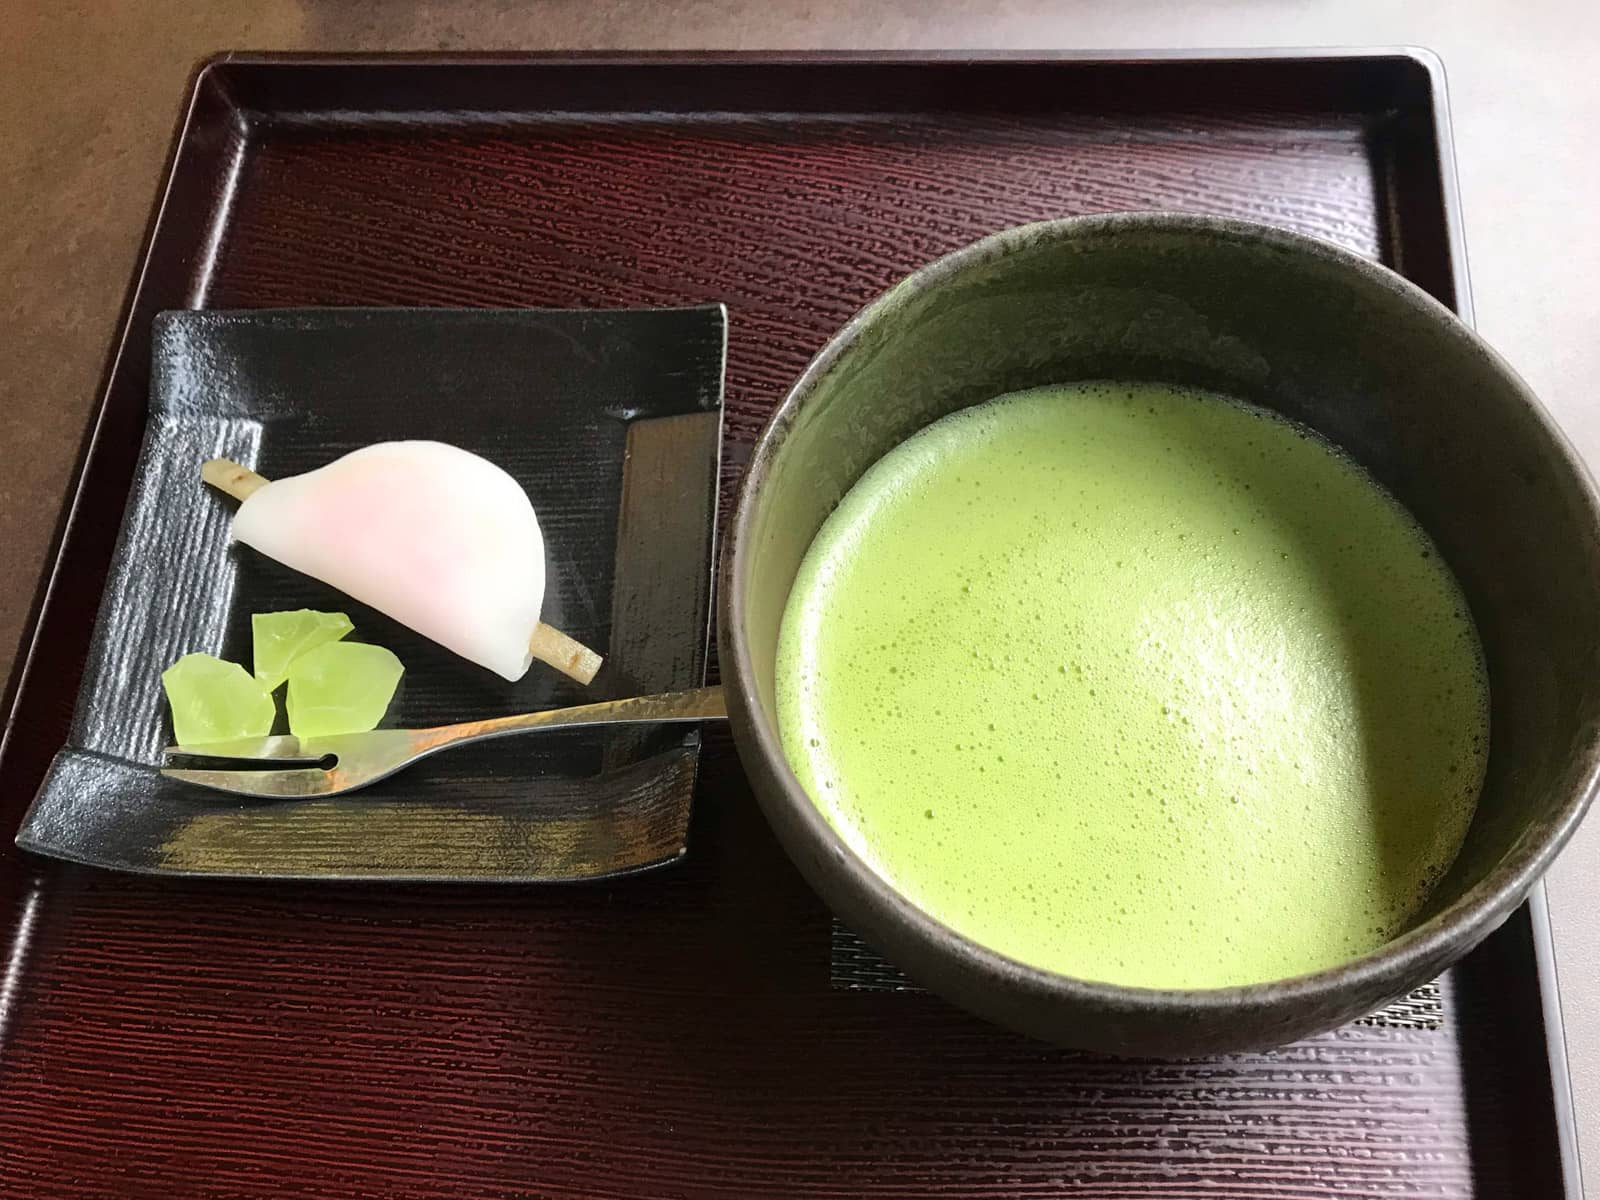 A tray served with green tea matcha and some sweets